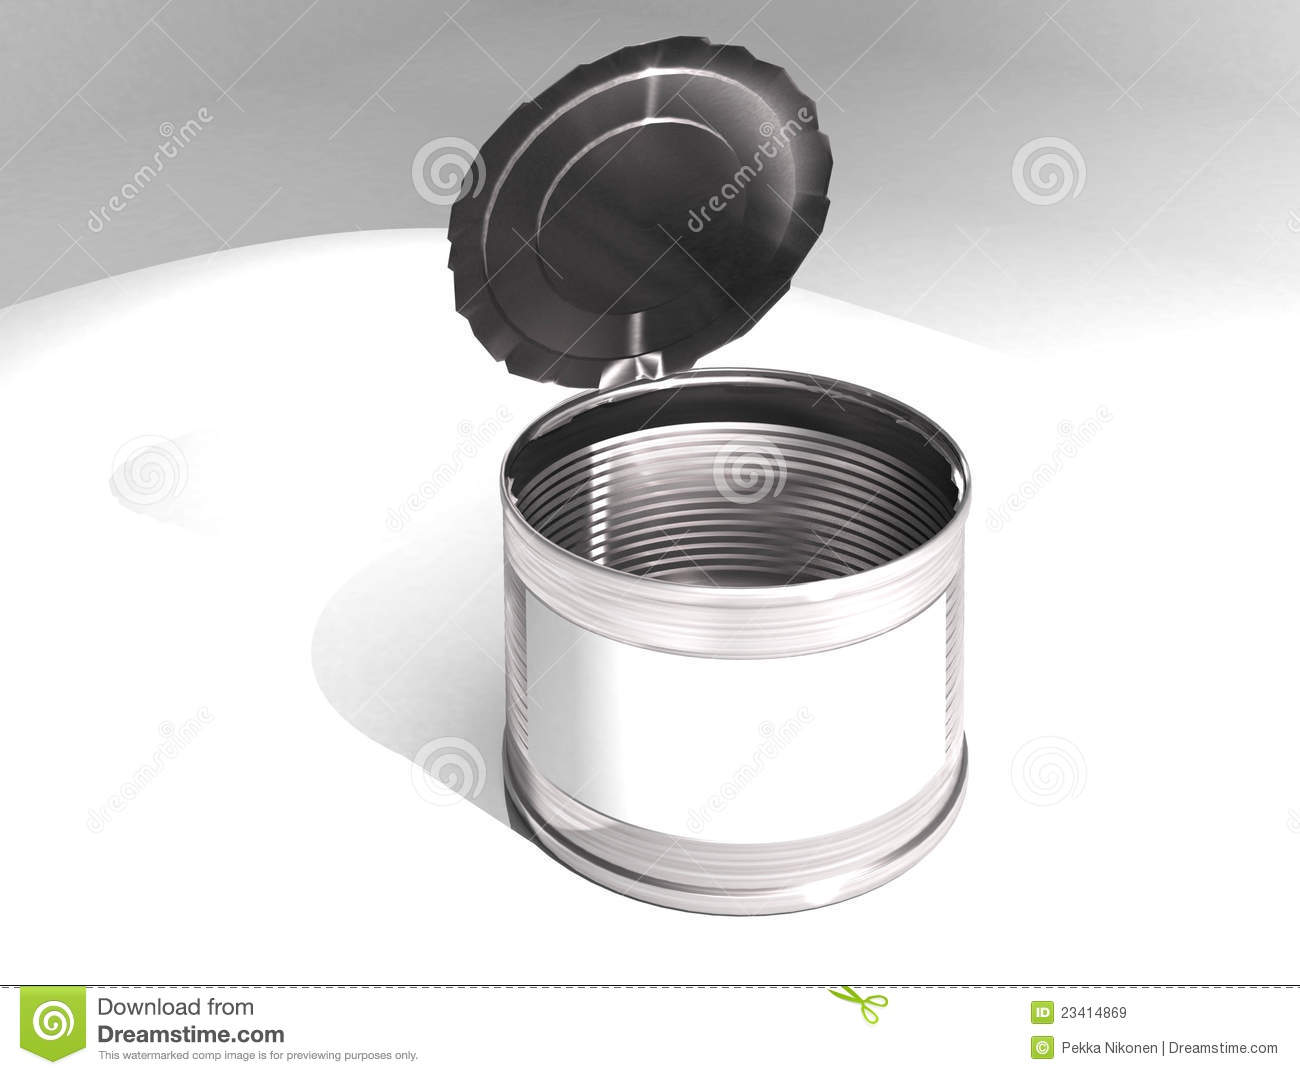 Empty can royalty free stock images image 23414869 Empty sardine cans